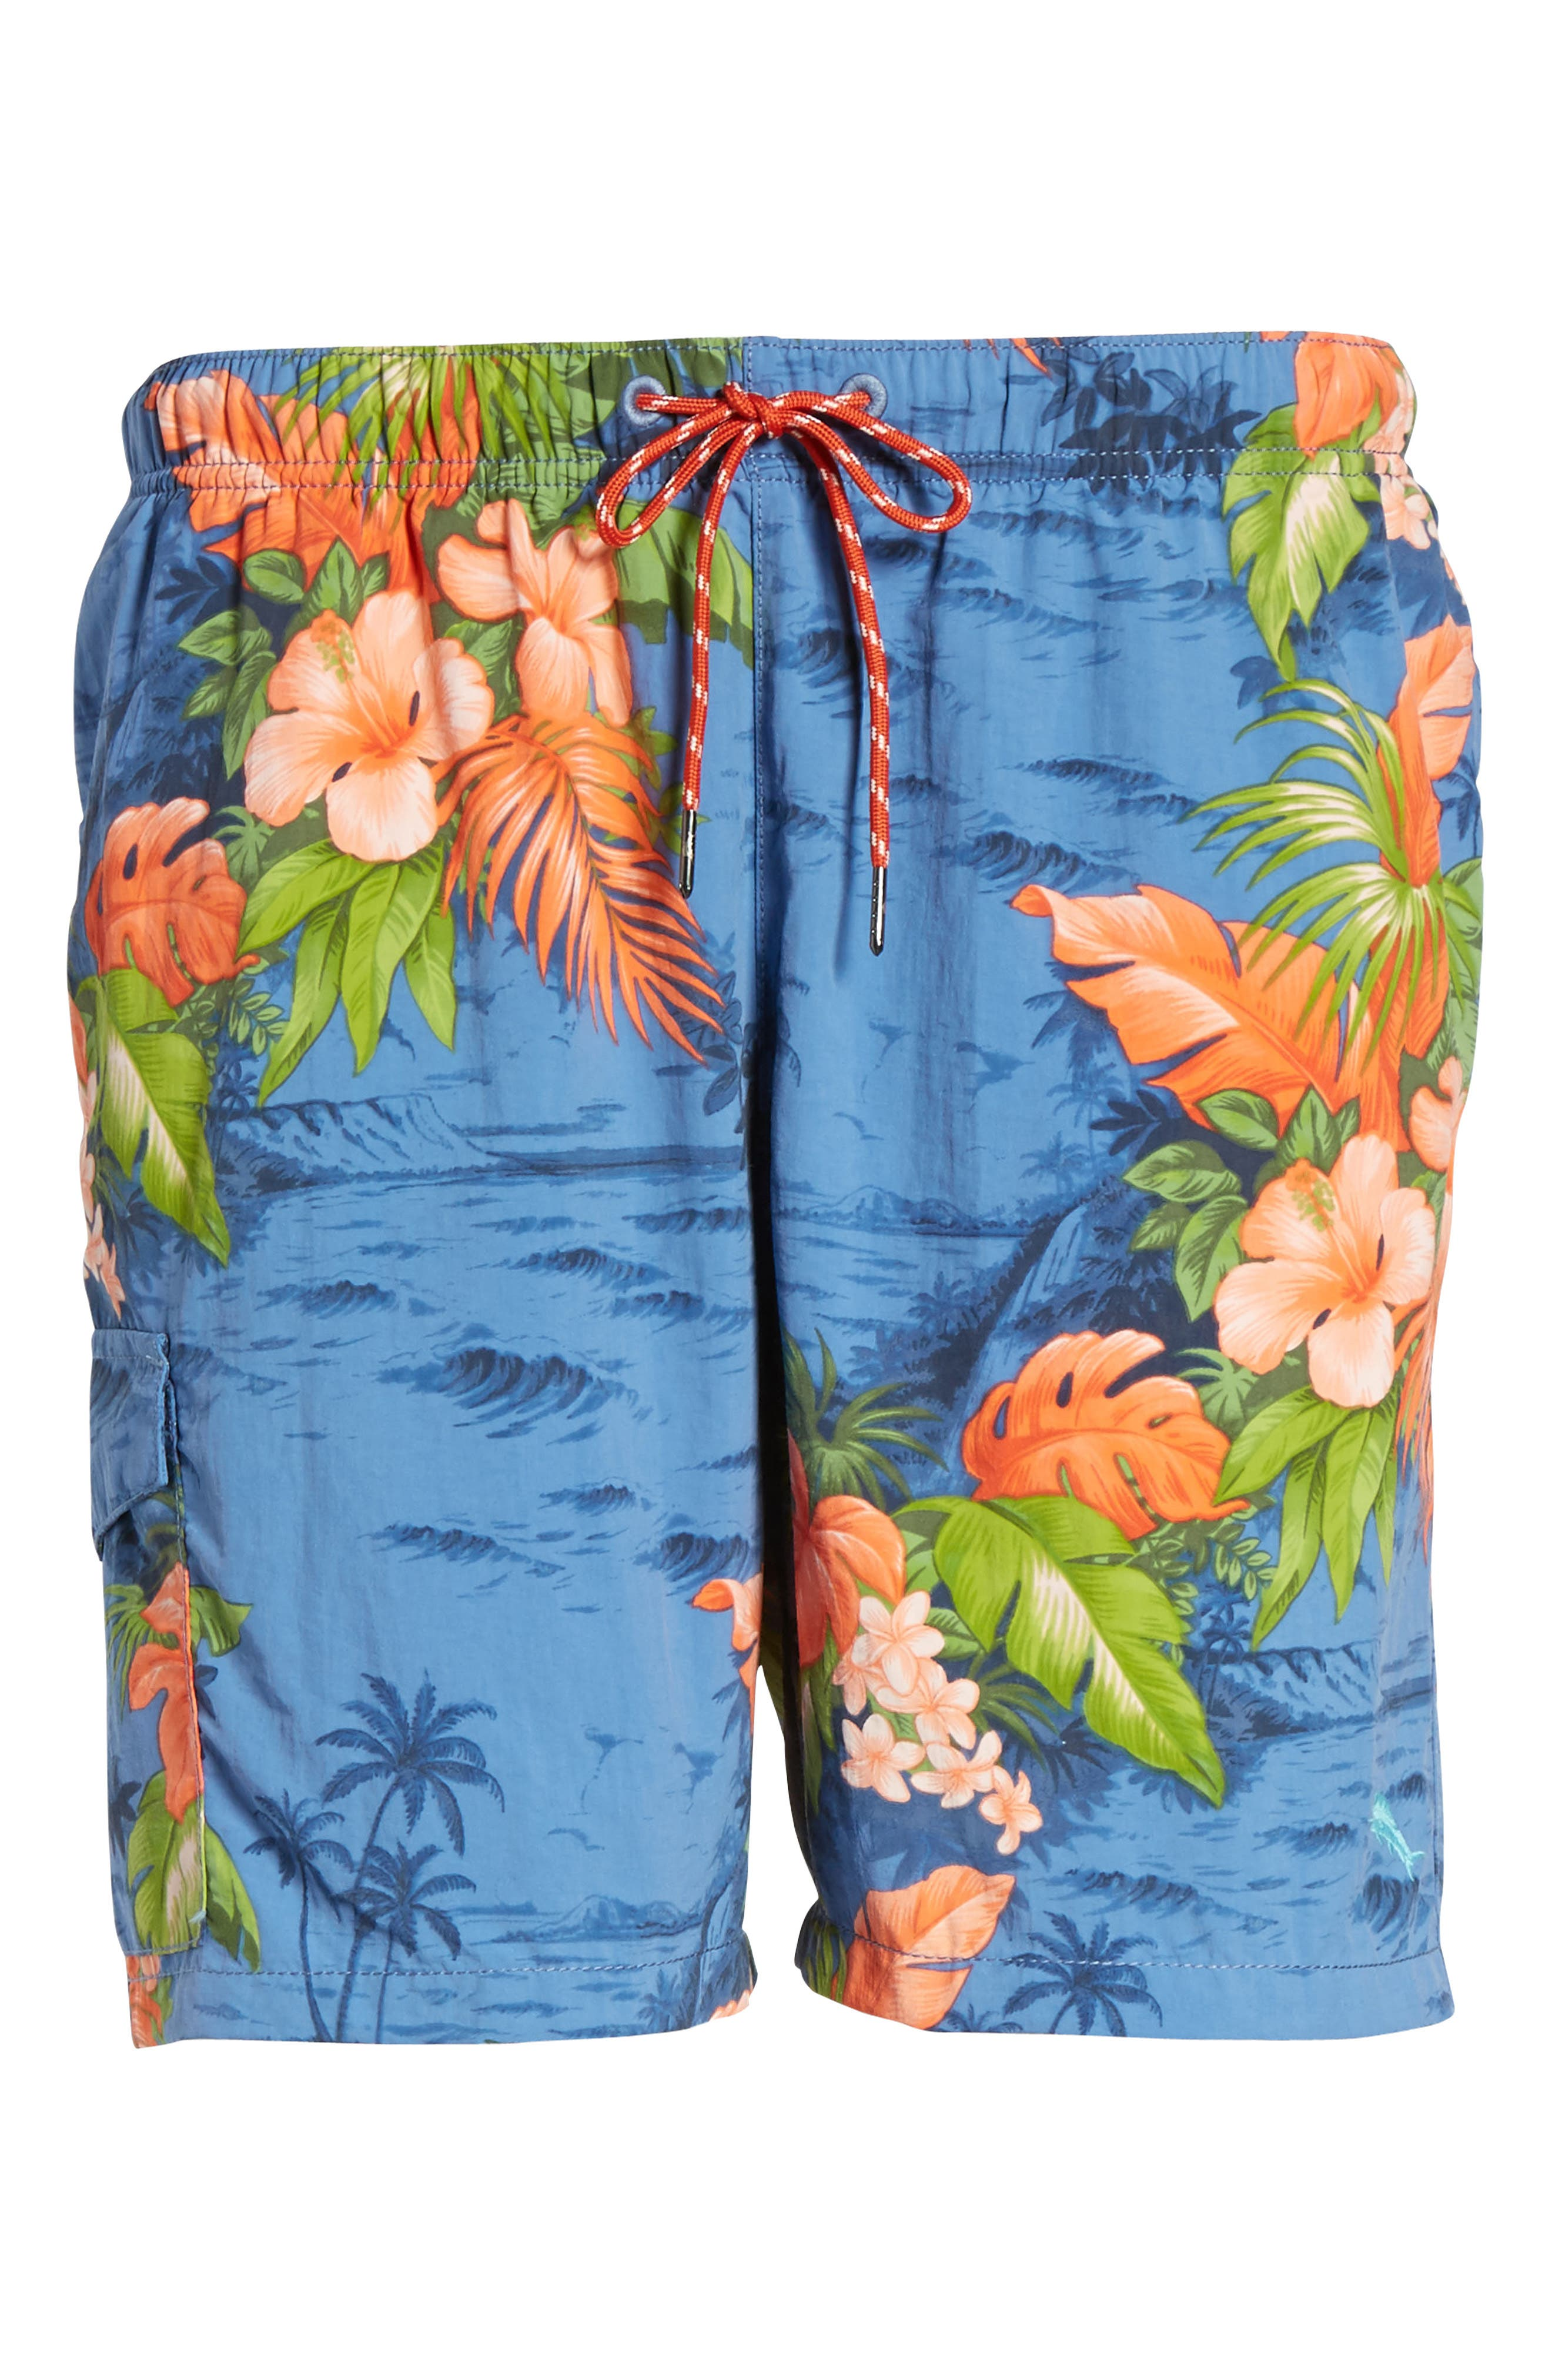 Naples Fiji Ferns Swim Trunks,                             Alternate thumbnail 6, color,                             Dockside Blue